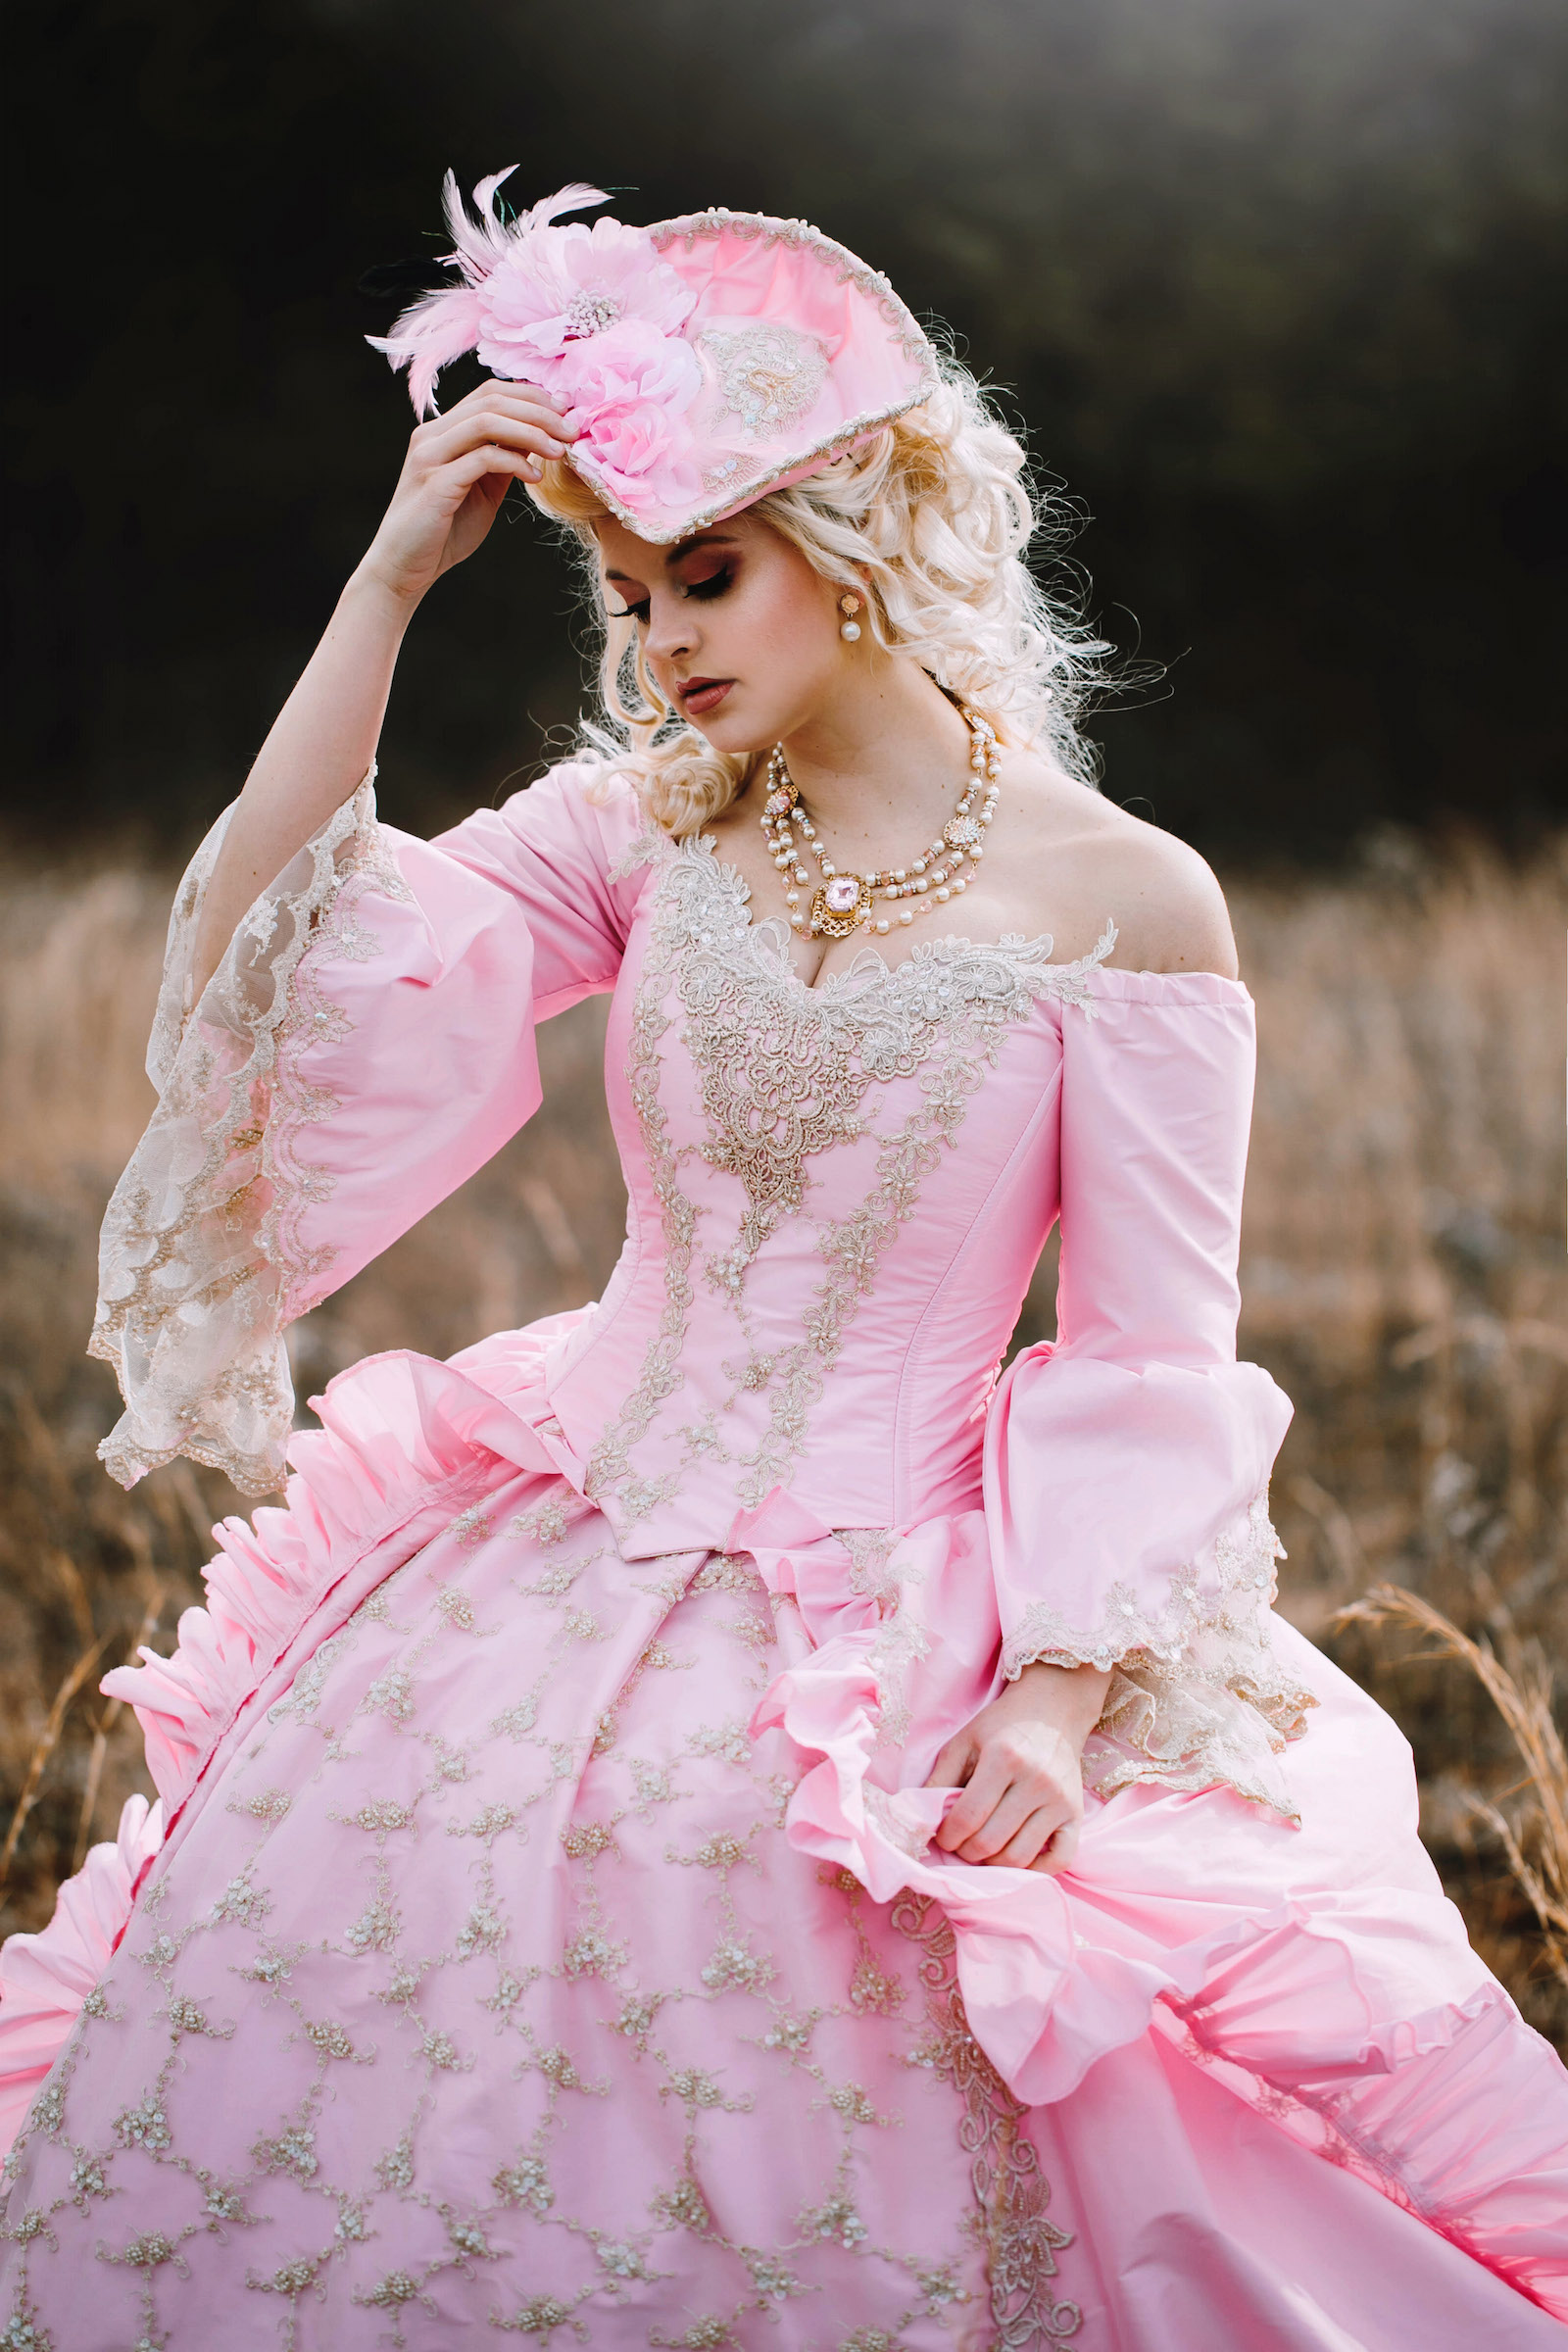 Medieval Wedding Gowns, Marie Antoinette Gowns, Gothic Wedding Gowns ...